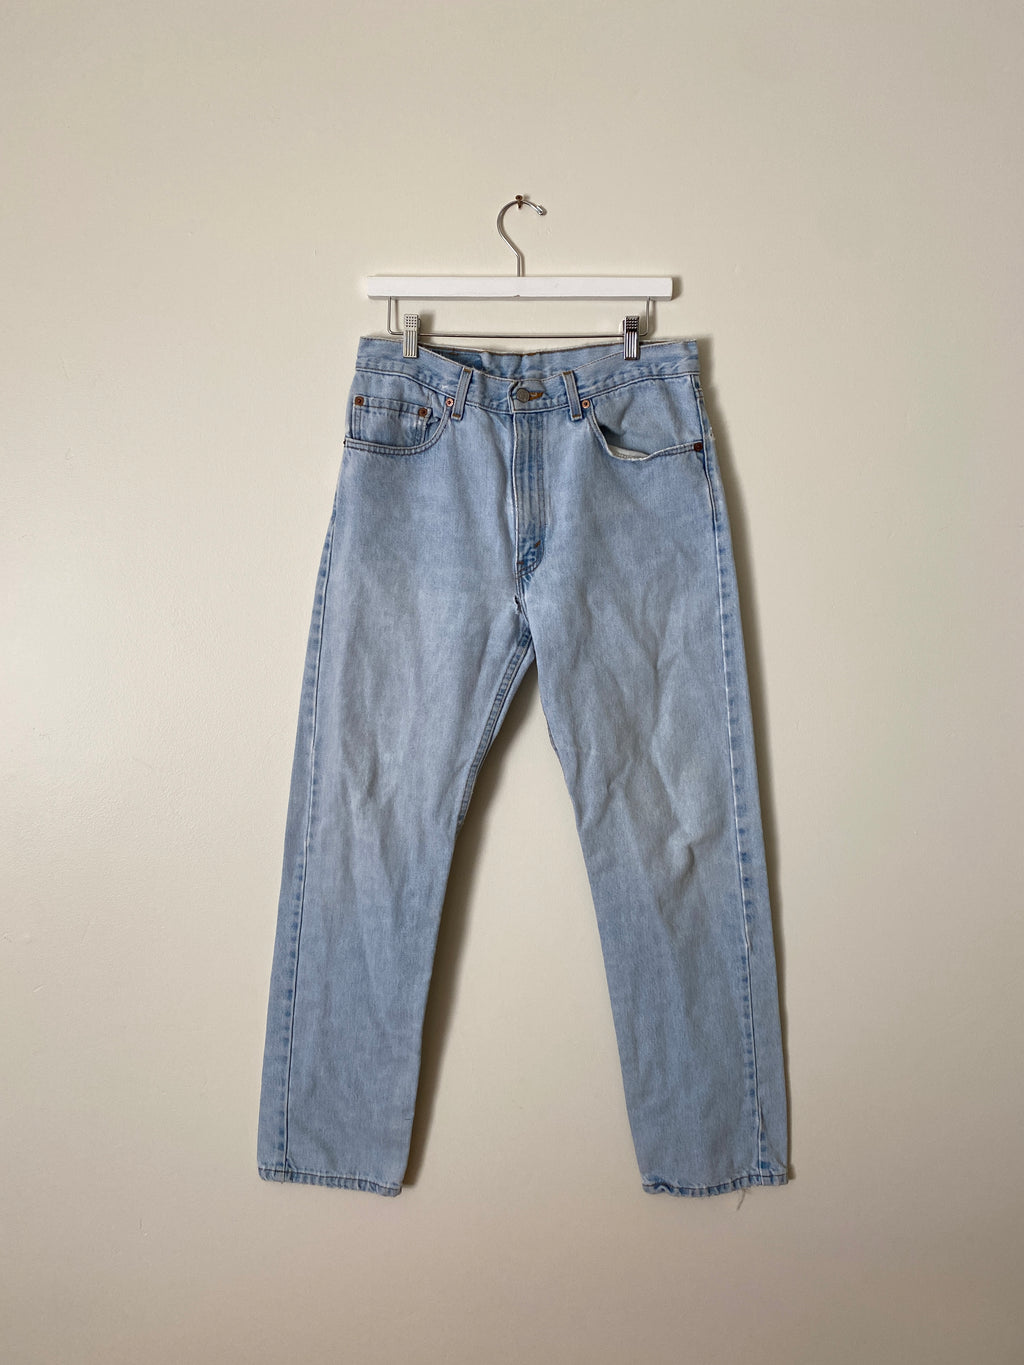 1990's Levi's 505 Faded Blue Jeans (32 x 32)